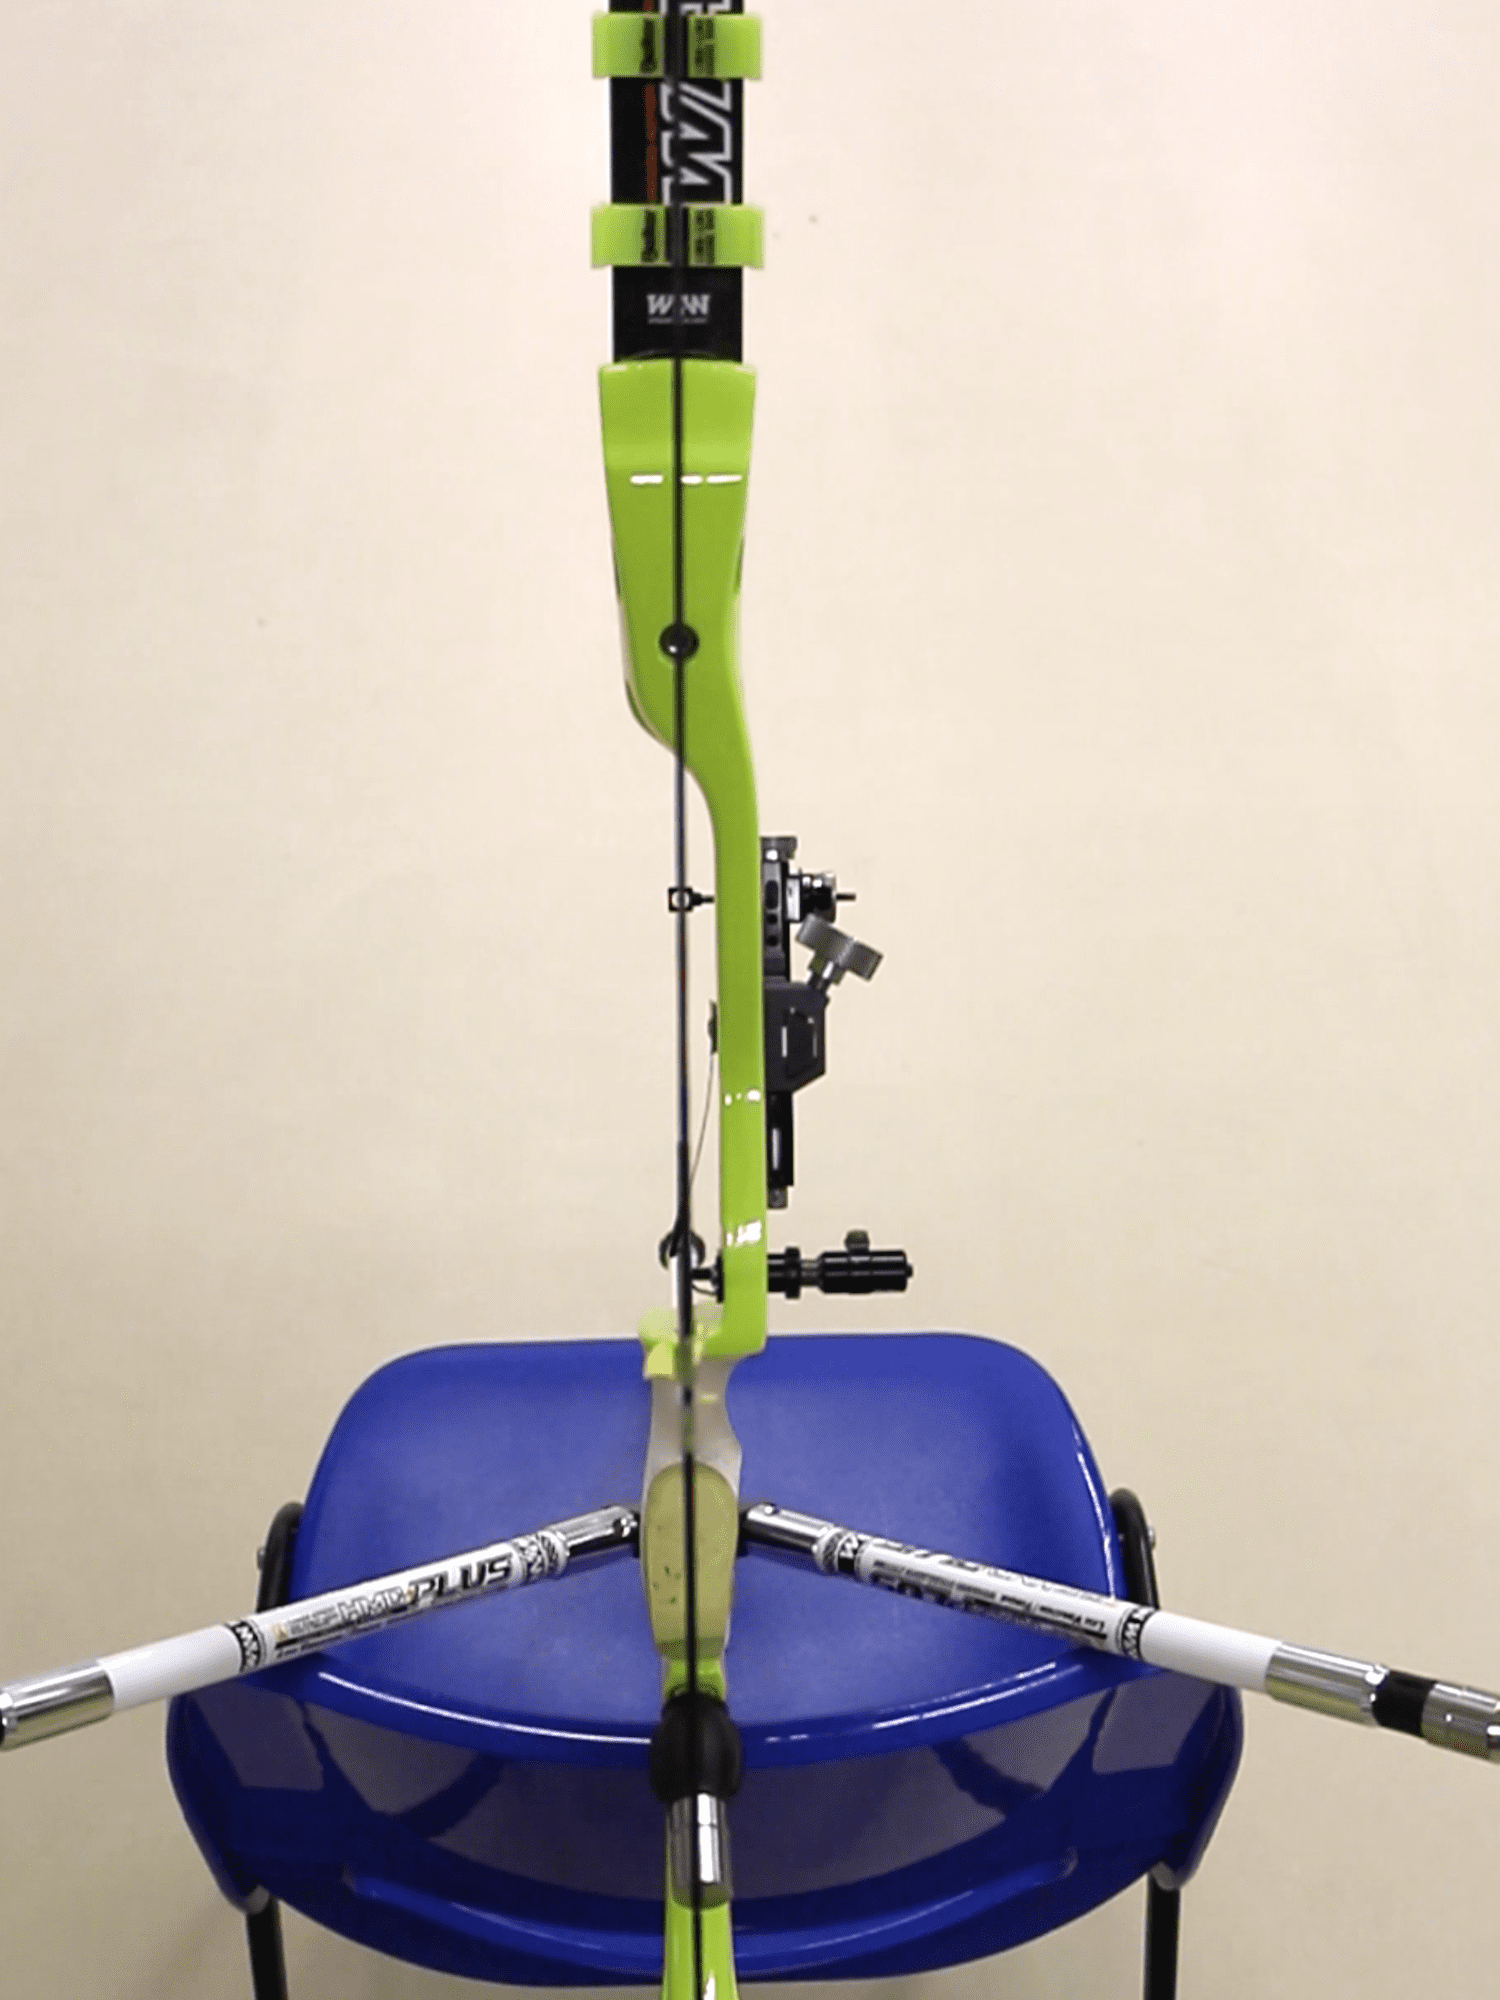 Recurve bow showing limb alignment process for basic tuning